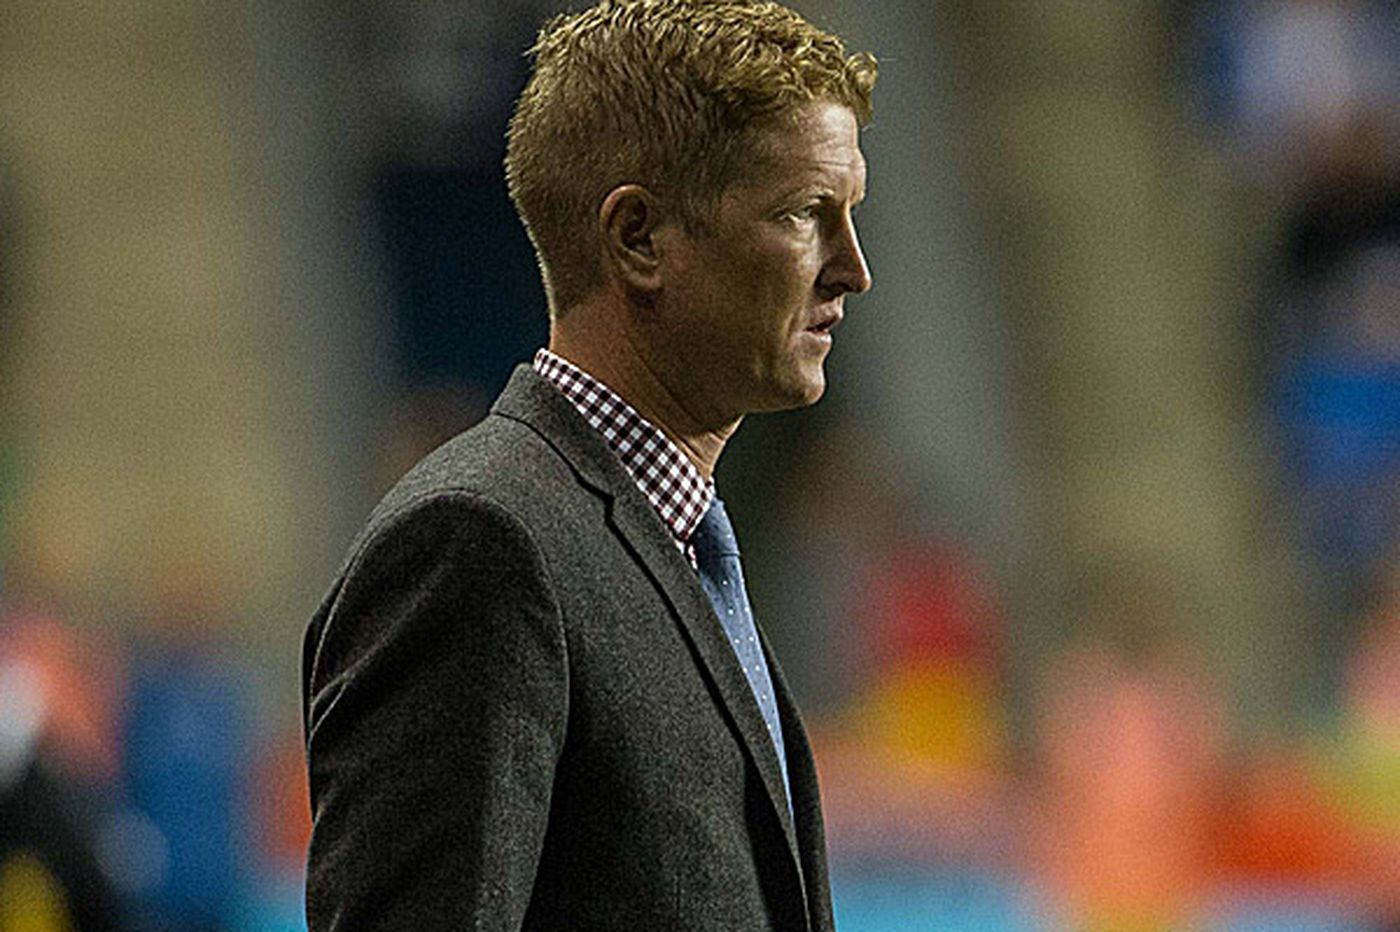 Union CEO Sakiewicz: Curtin 'right man' to coach the team